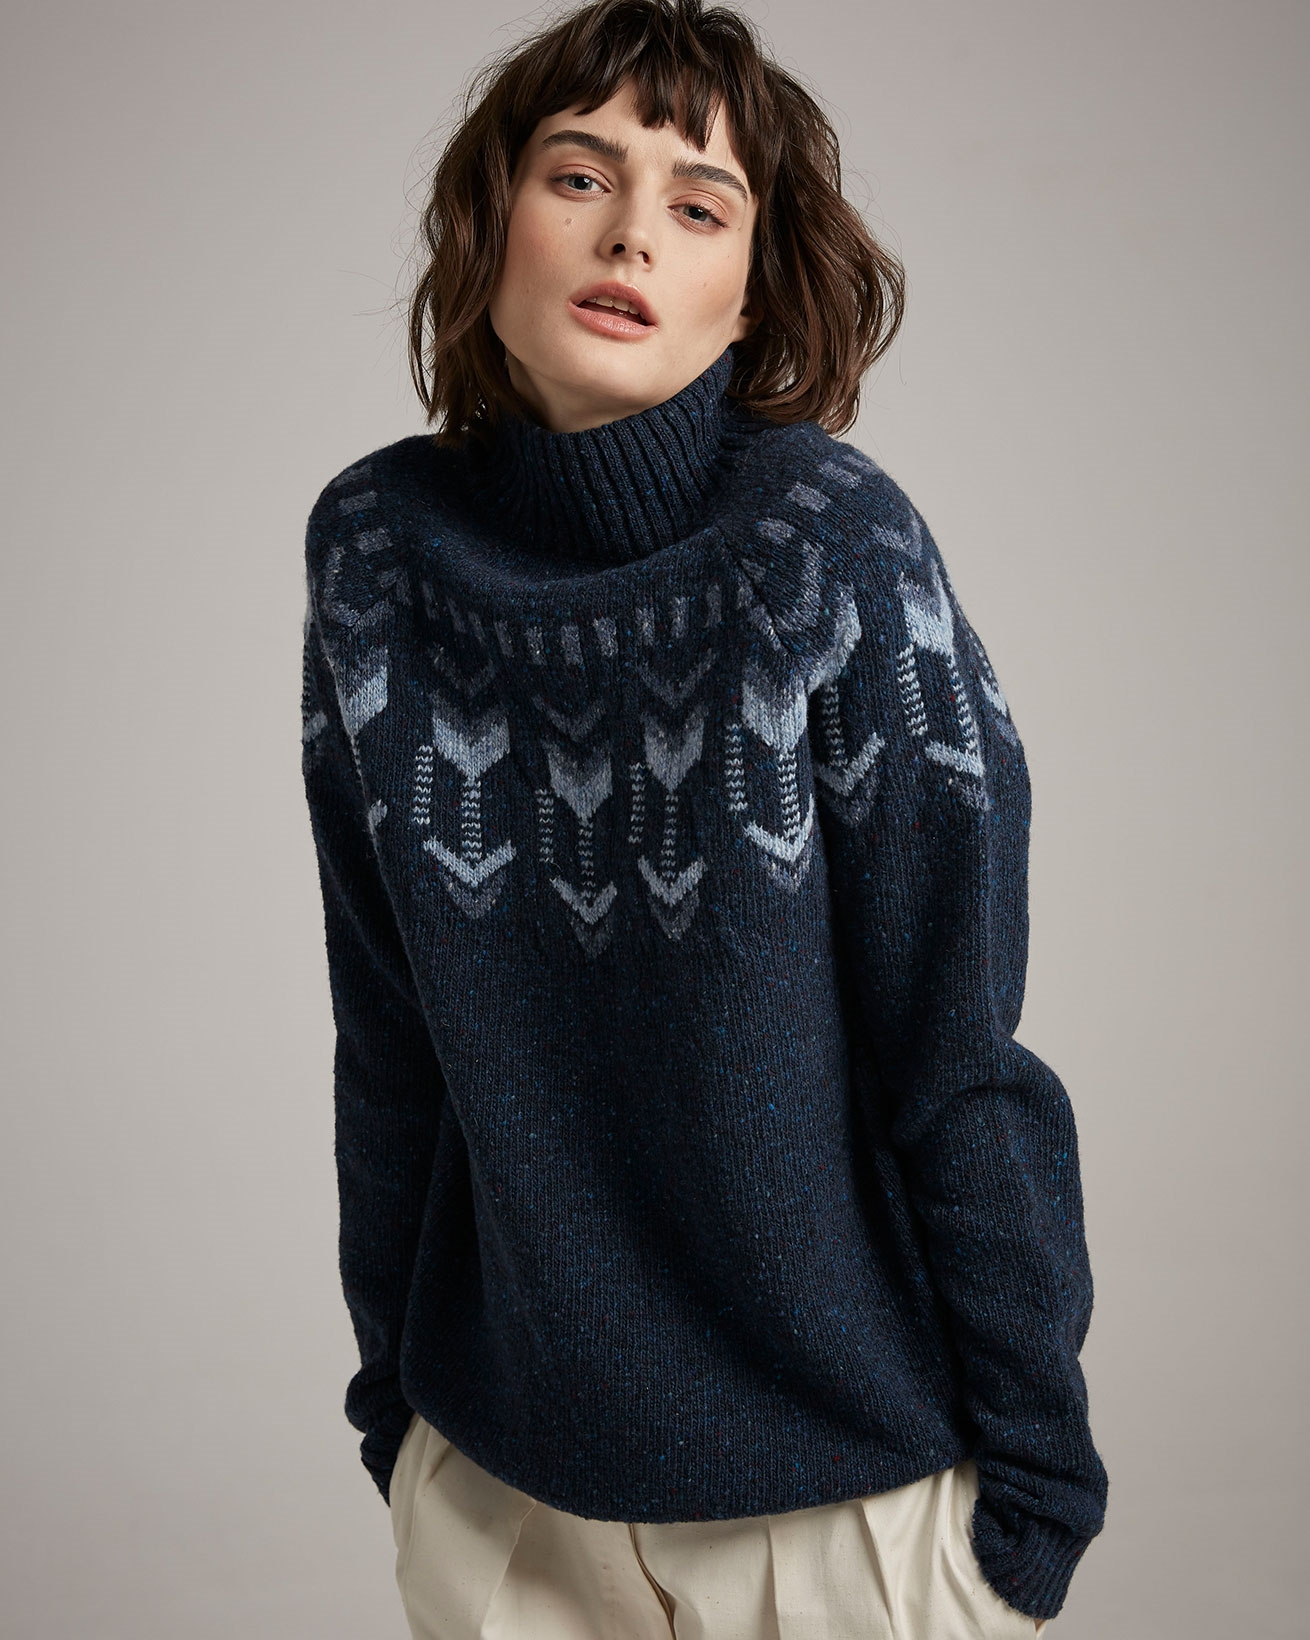 7780-fair-isle-funnel-neck-jumper.jpg